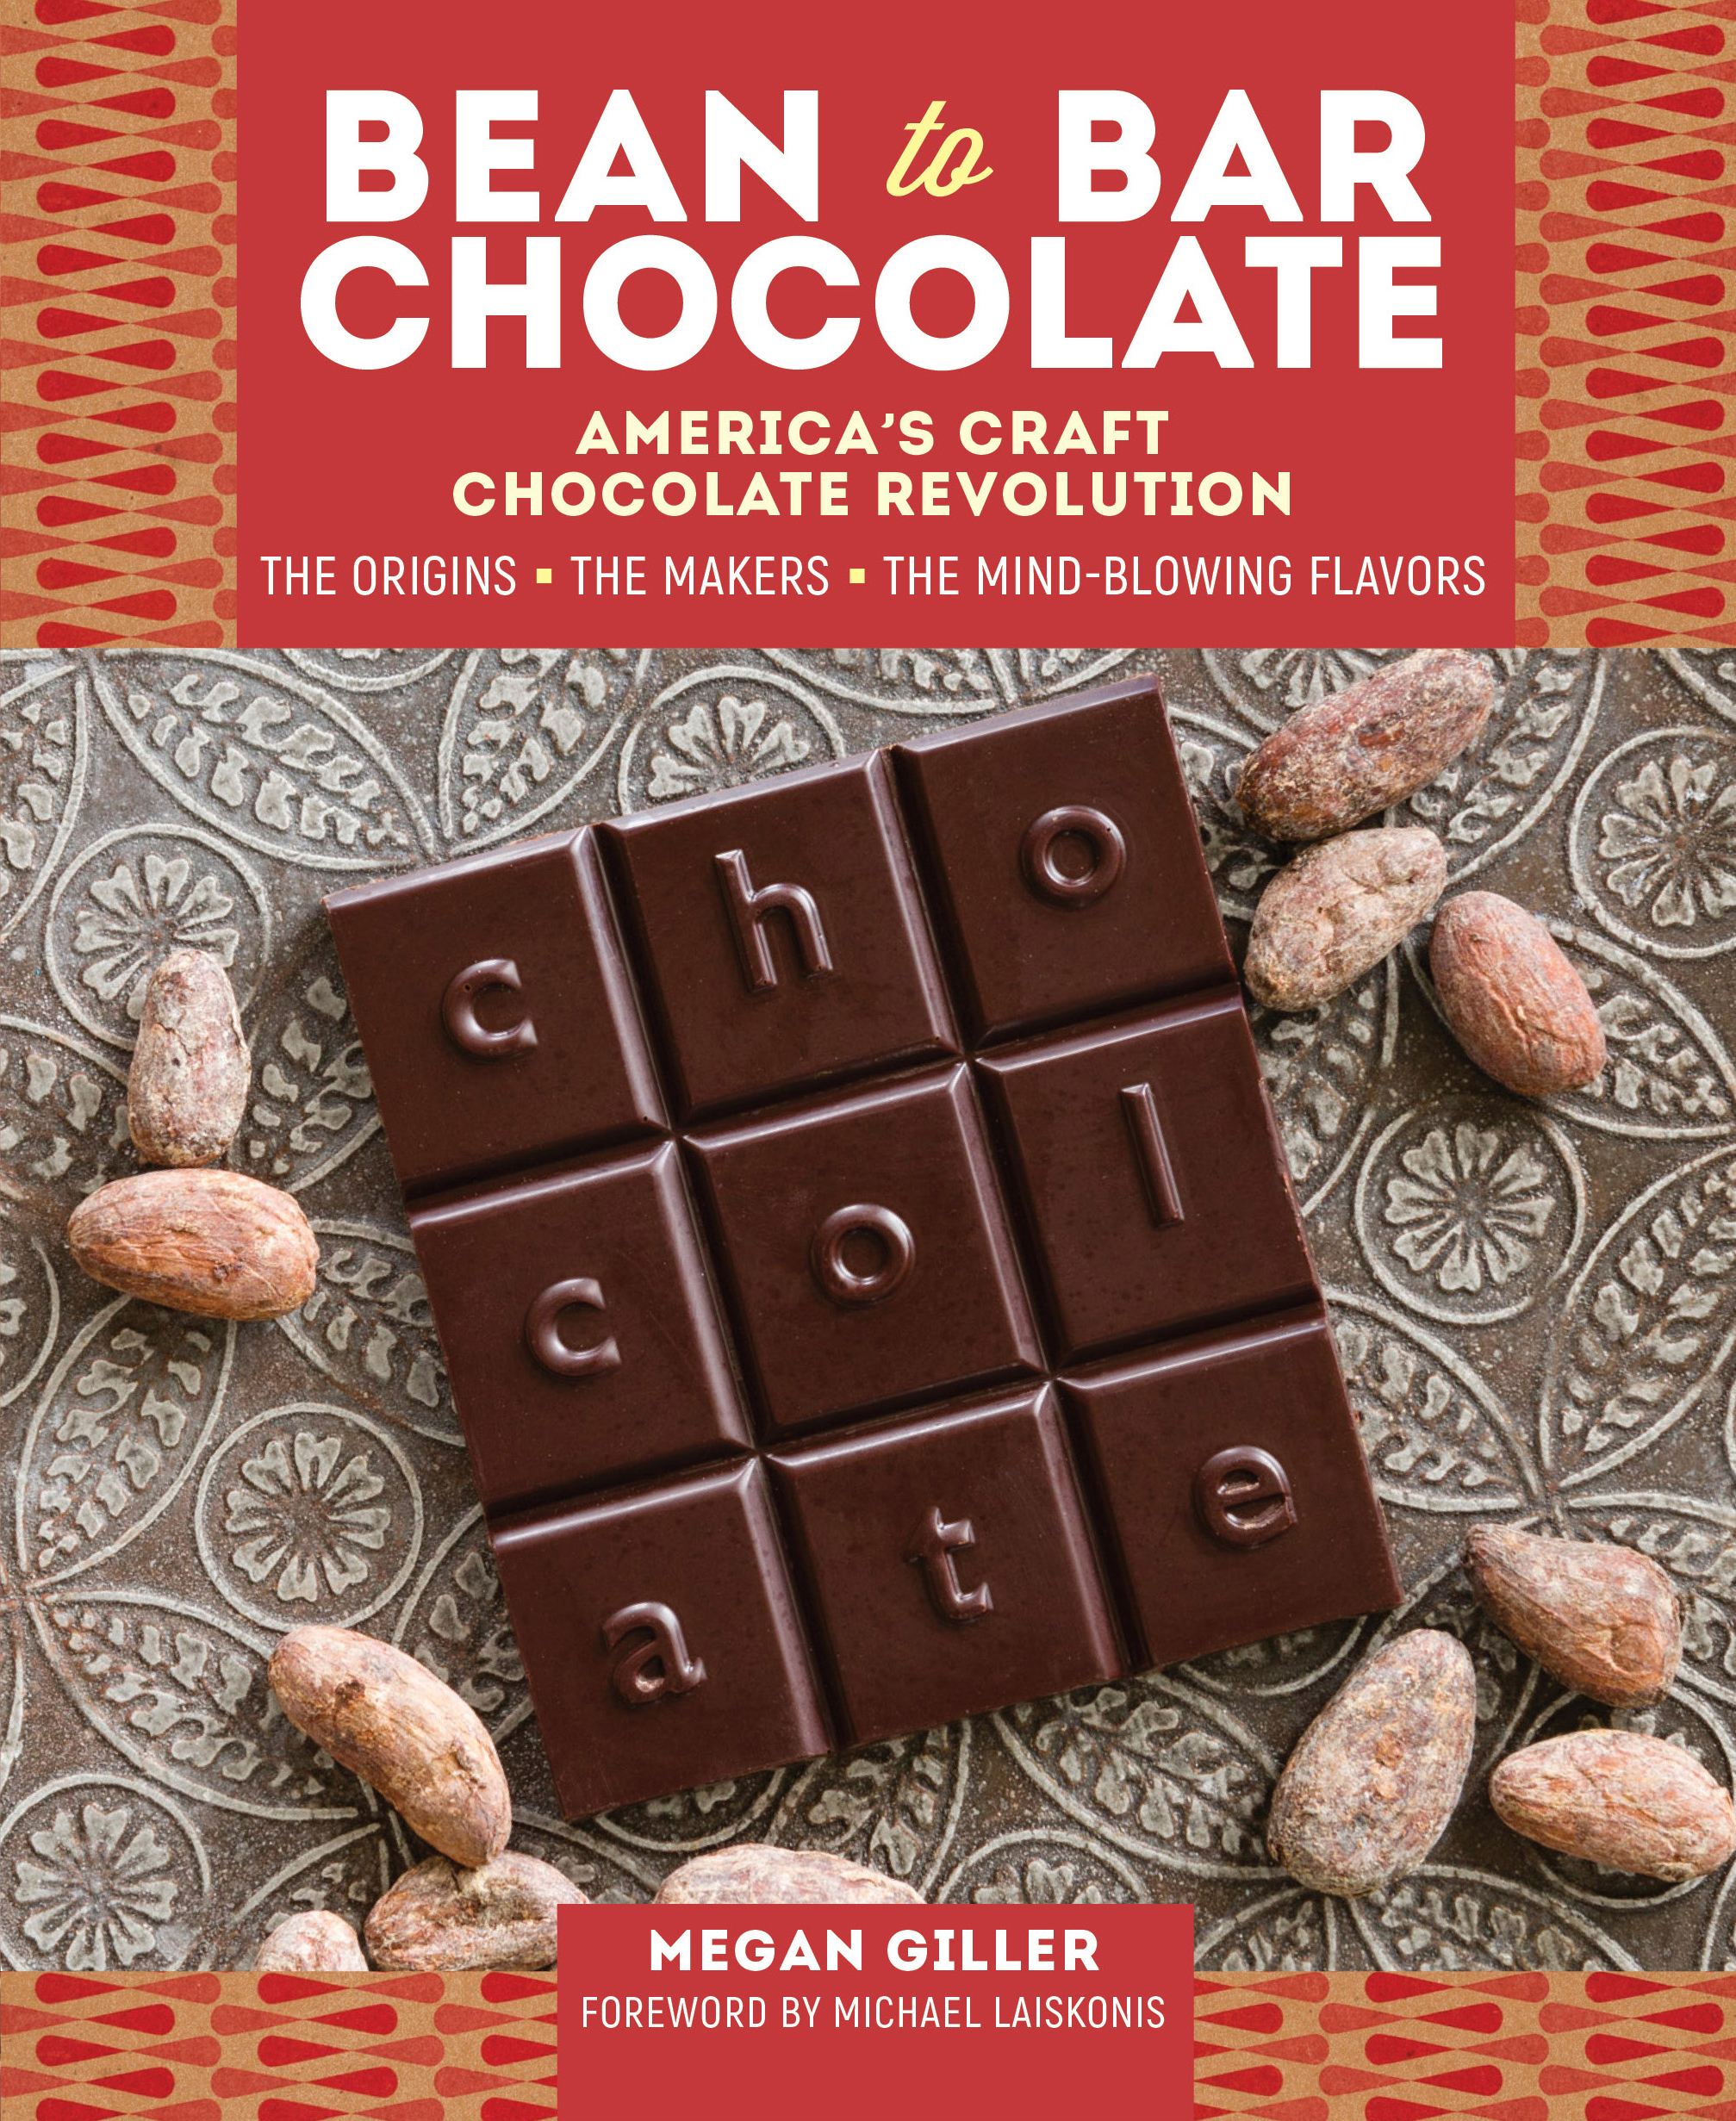 Bean-to-Bar Chocolate America's Craft Chocolate Revolution: The Origins, the Makers, and the Mind-Blowing Flavors - Megan Giller